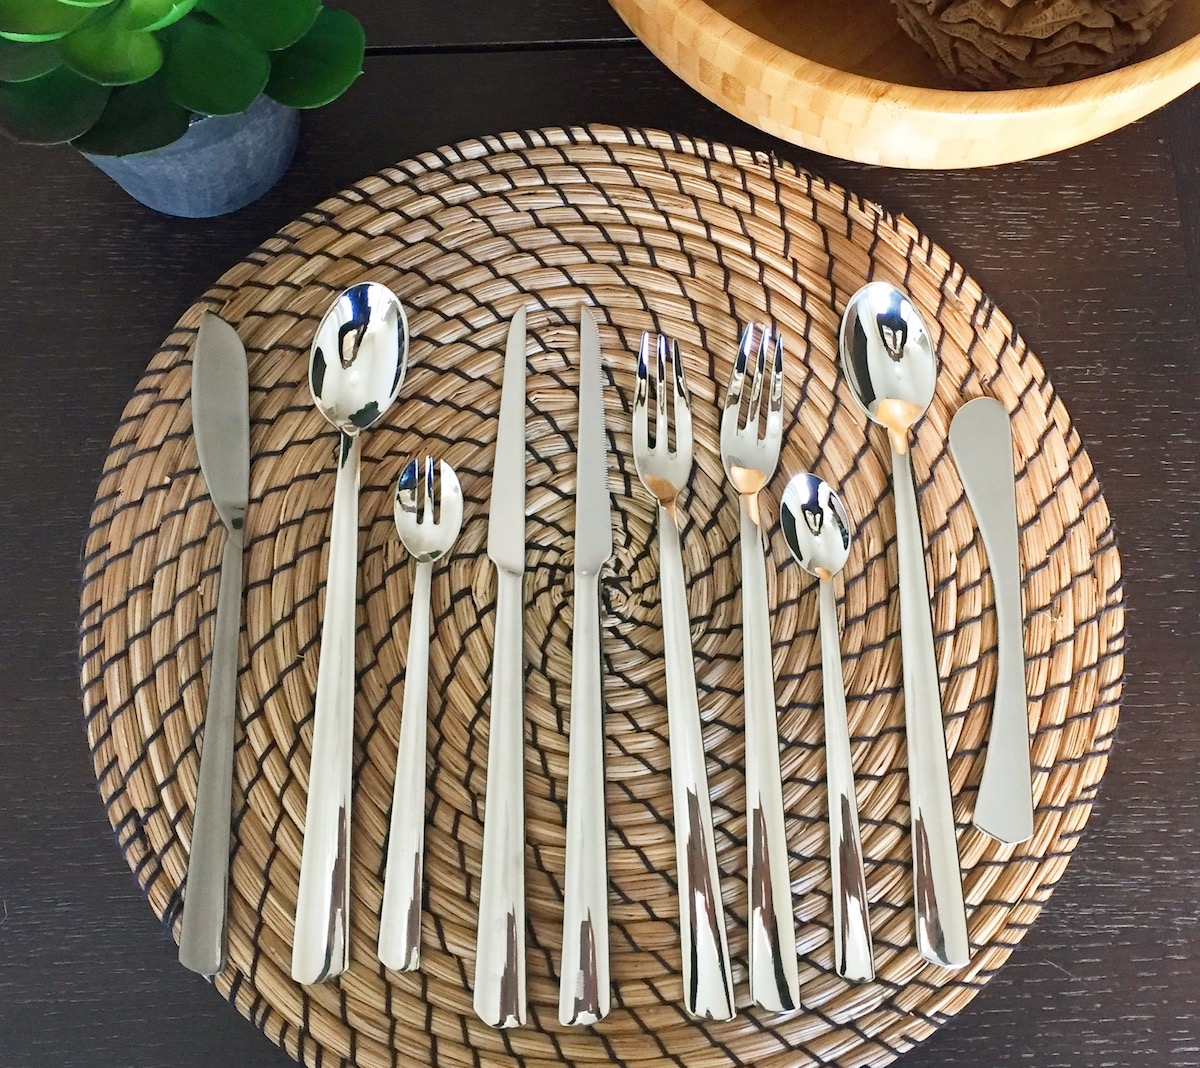 MoonLashes cutlery collection